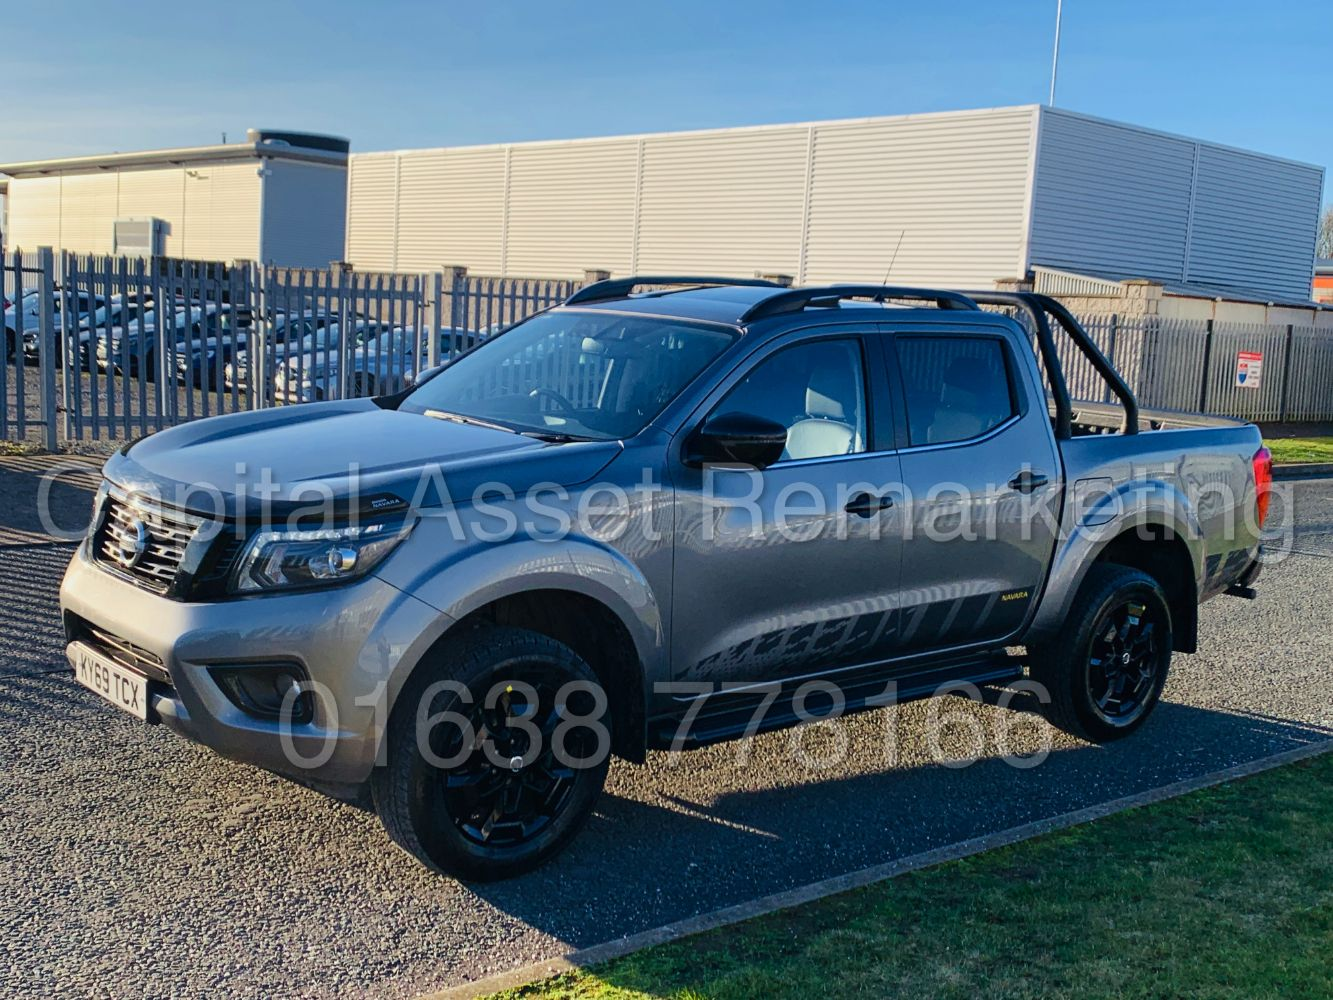 2019 '69 Reg' Nissan Navara *N-Guard* Double Cab Pick-Up (TOP OF THE RANGE) + Many More: Cars, Commercials & 4x4's !!!